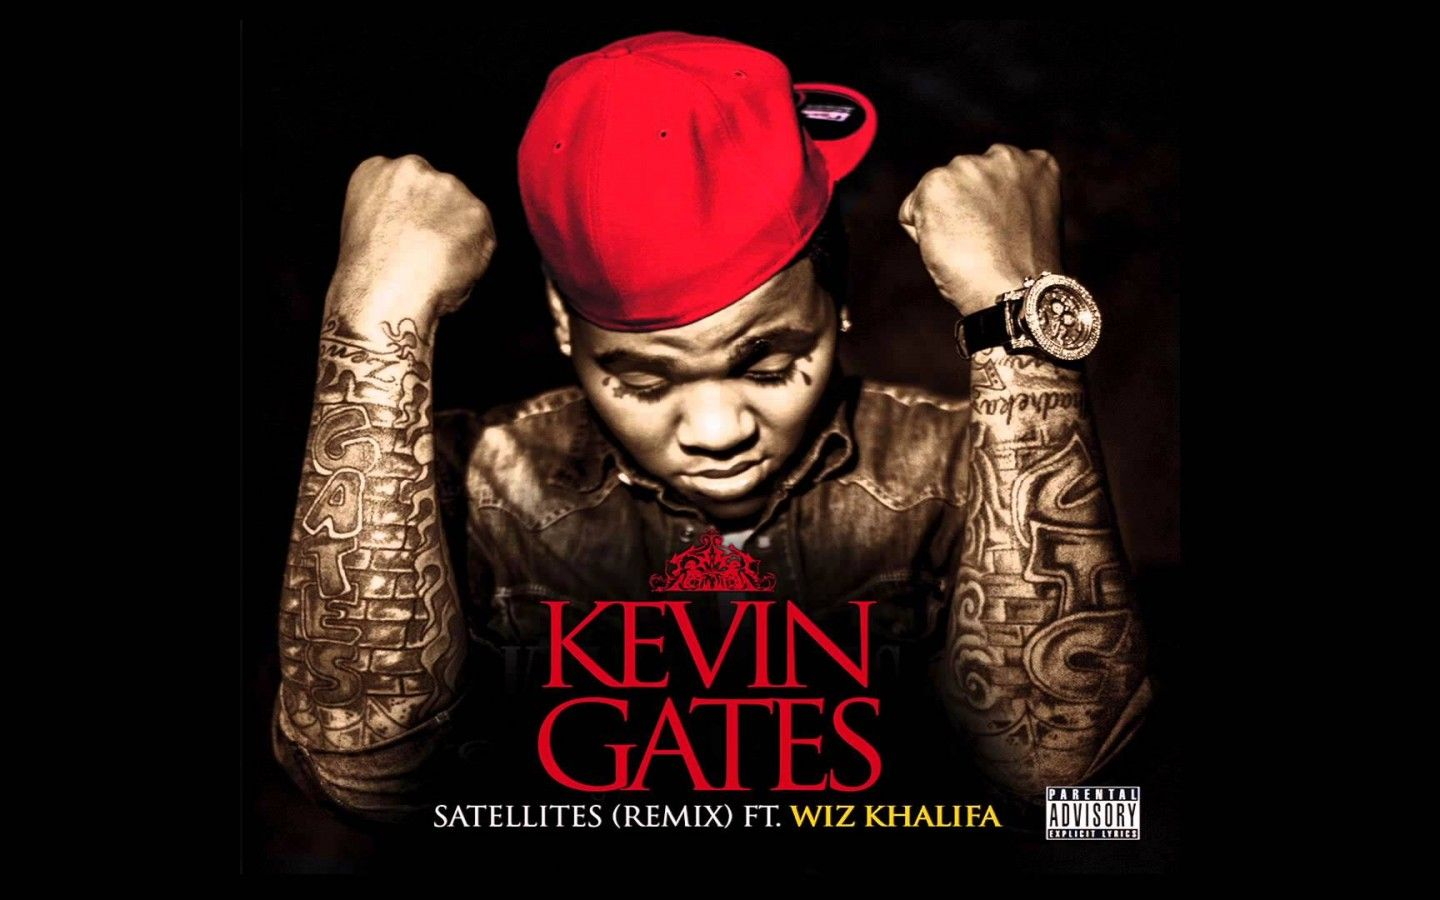 Kevin Gates Quotes Wallpapers - Top Free Kevin Gates Quotes ...